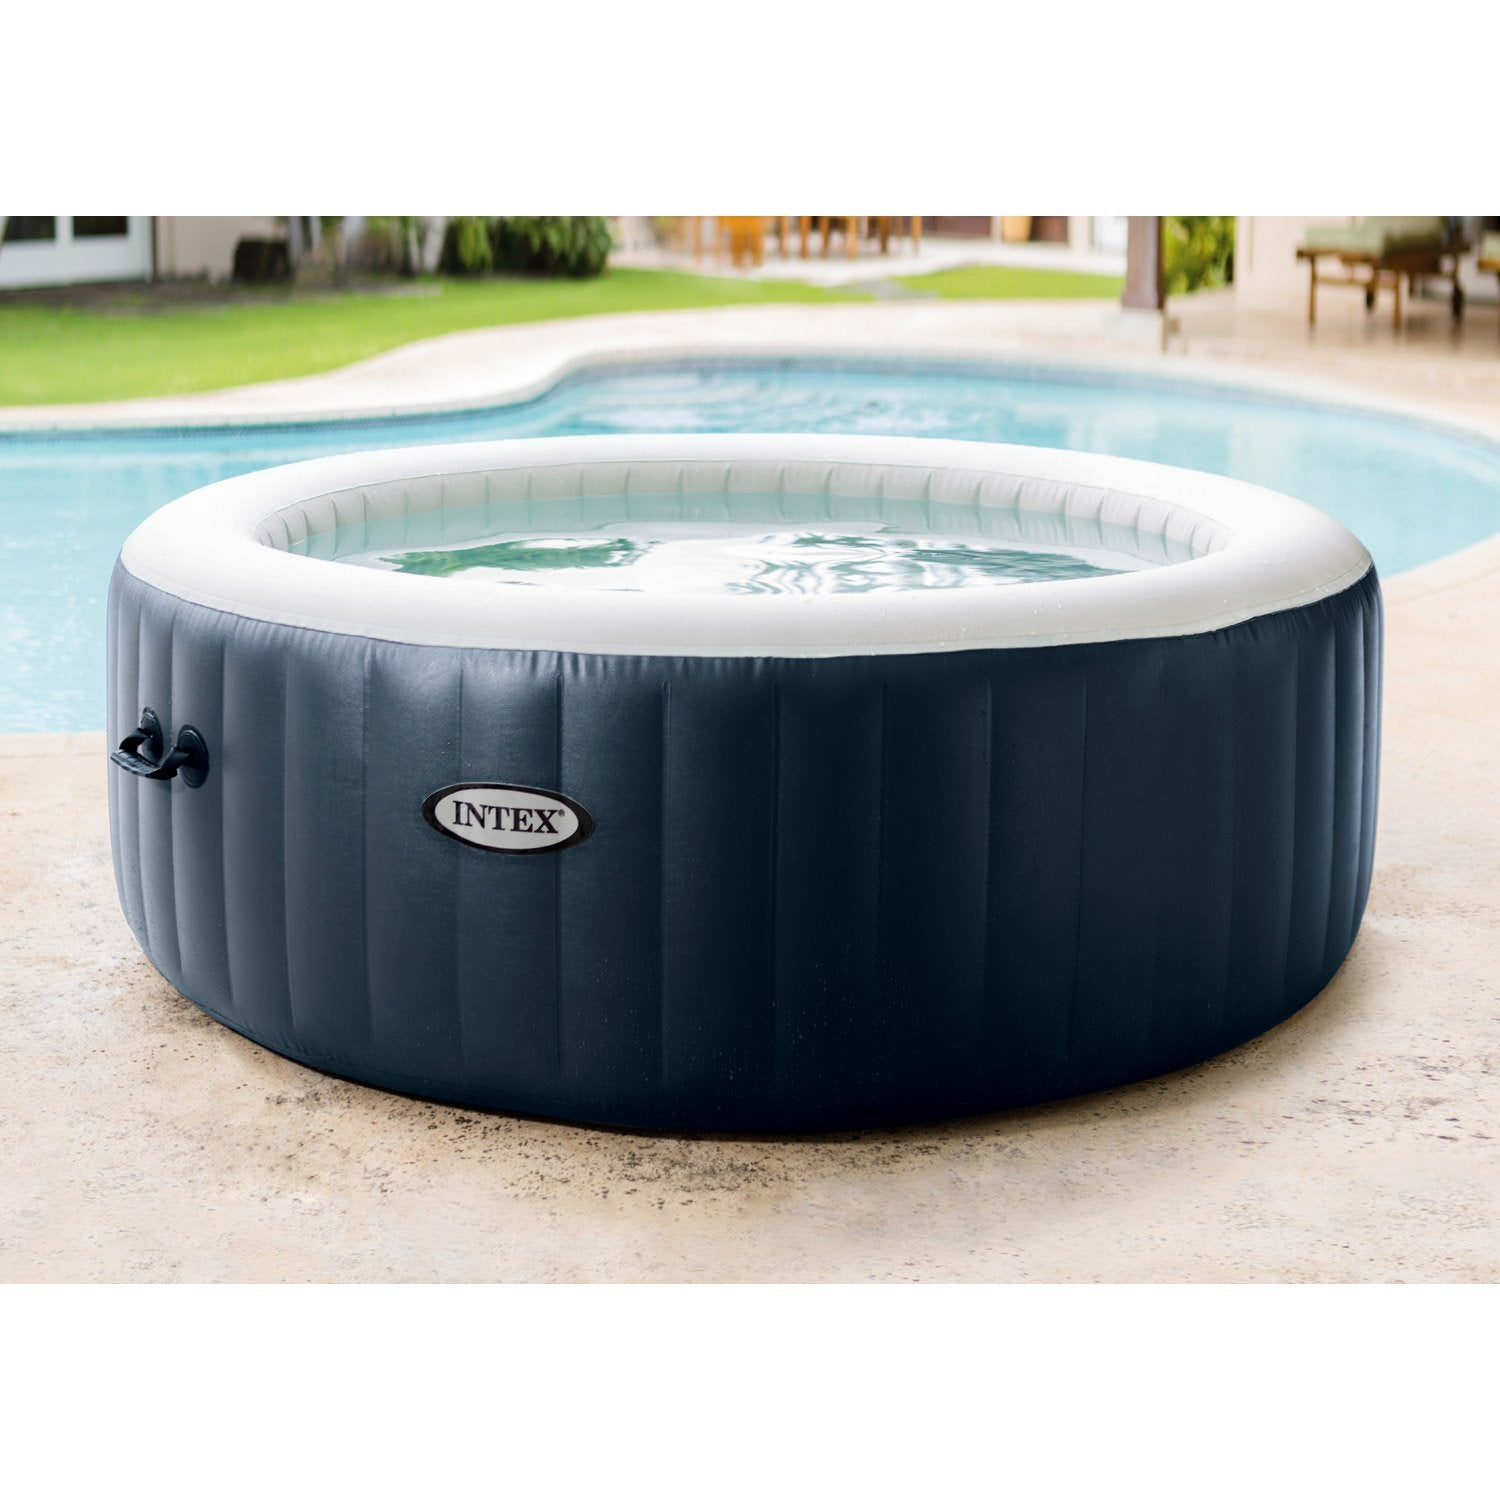 spa gonflable intex purespa bulles blue navy rond 6 With rechauffeur piscine intex leroy merlin 6 spa gonflable piscine et spa leroy merlin